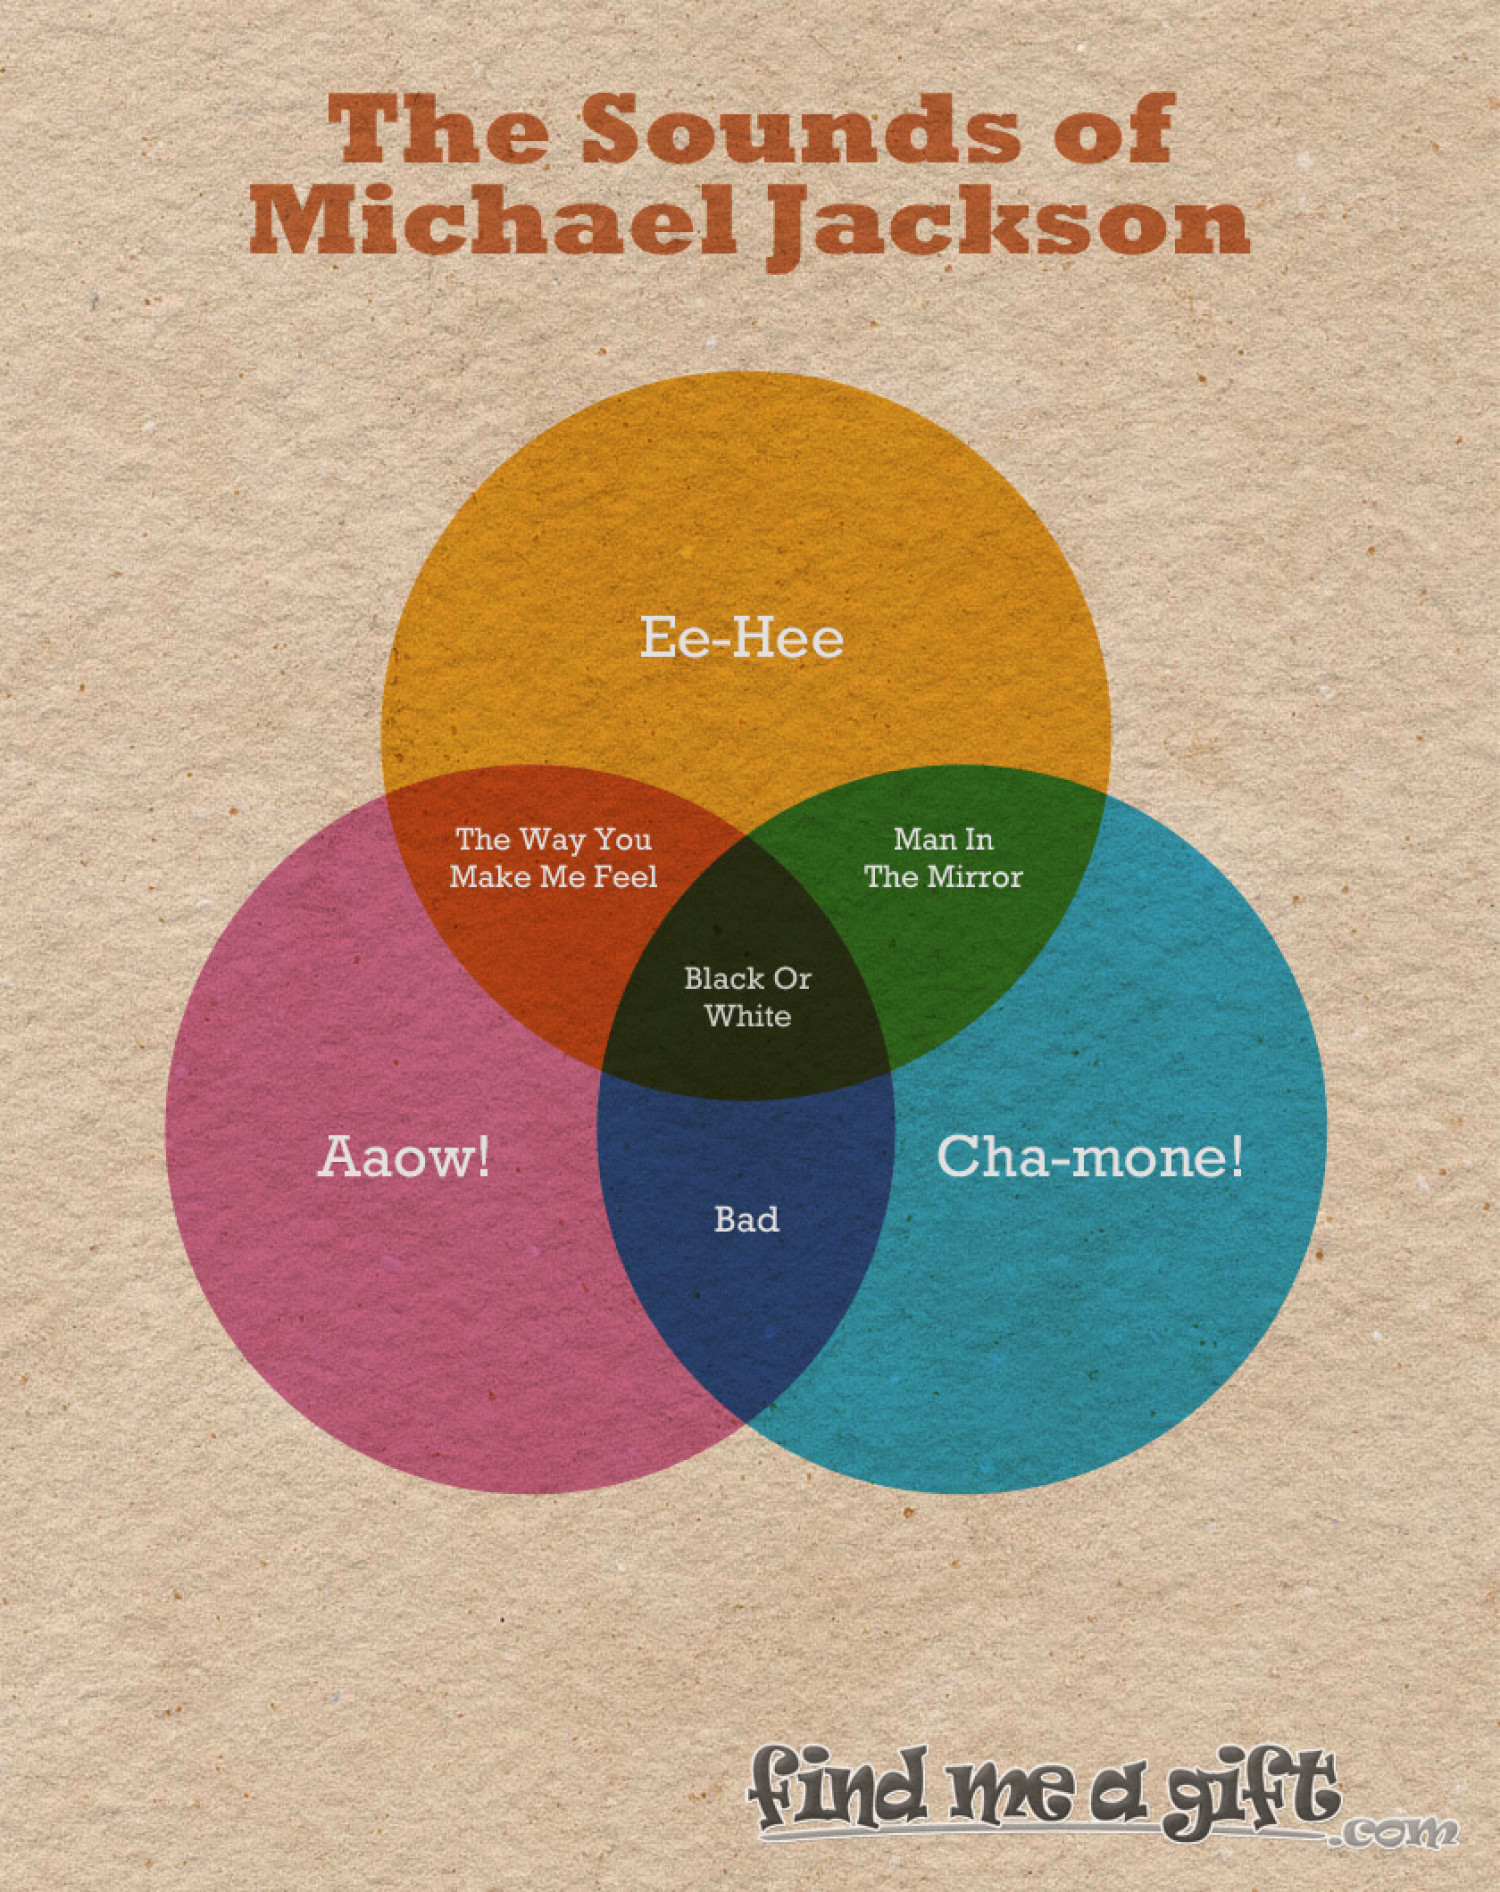 The Sounds Of Michael Jackson Infographic